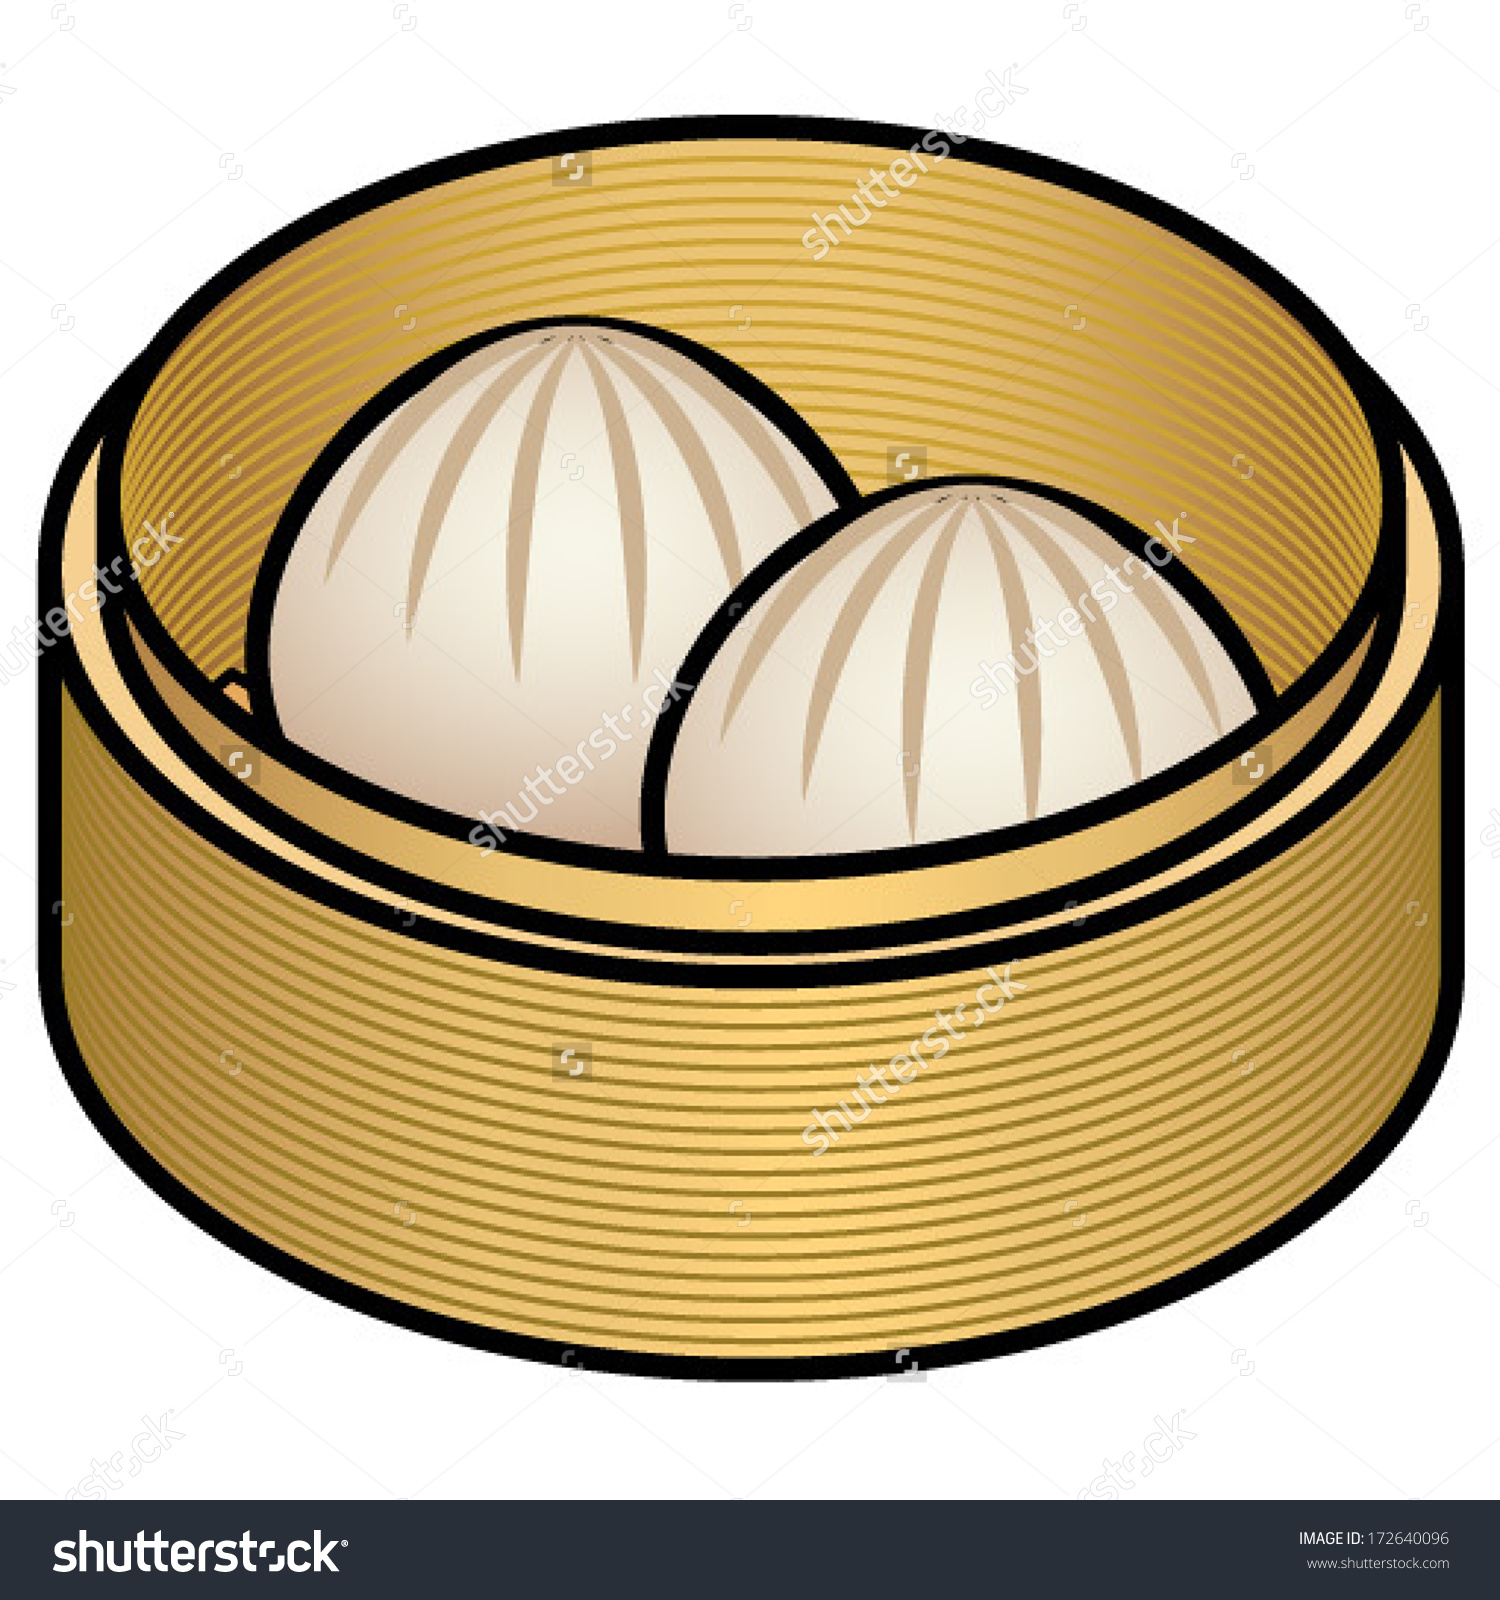 Bamboo Steamer Chinese Pork Bun Dumplings Stock Vector 172640096.